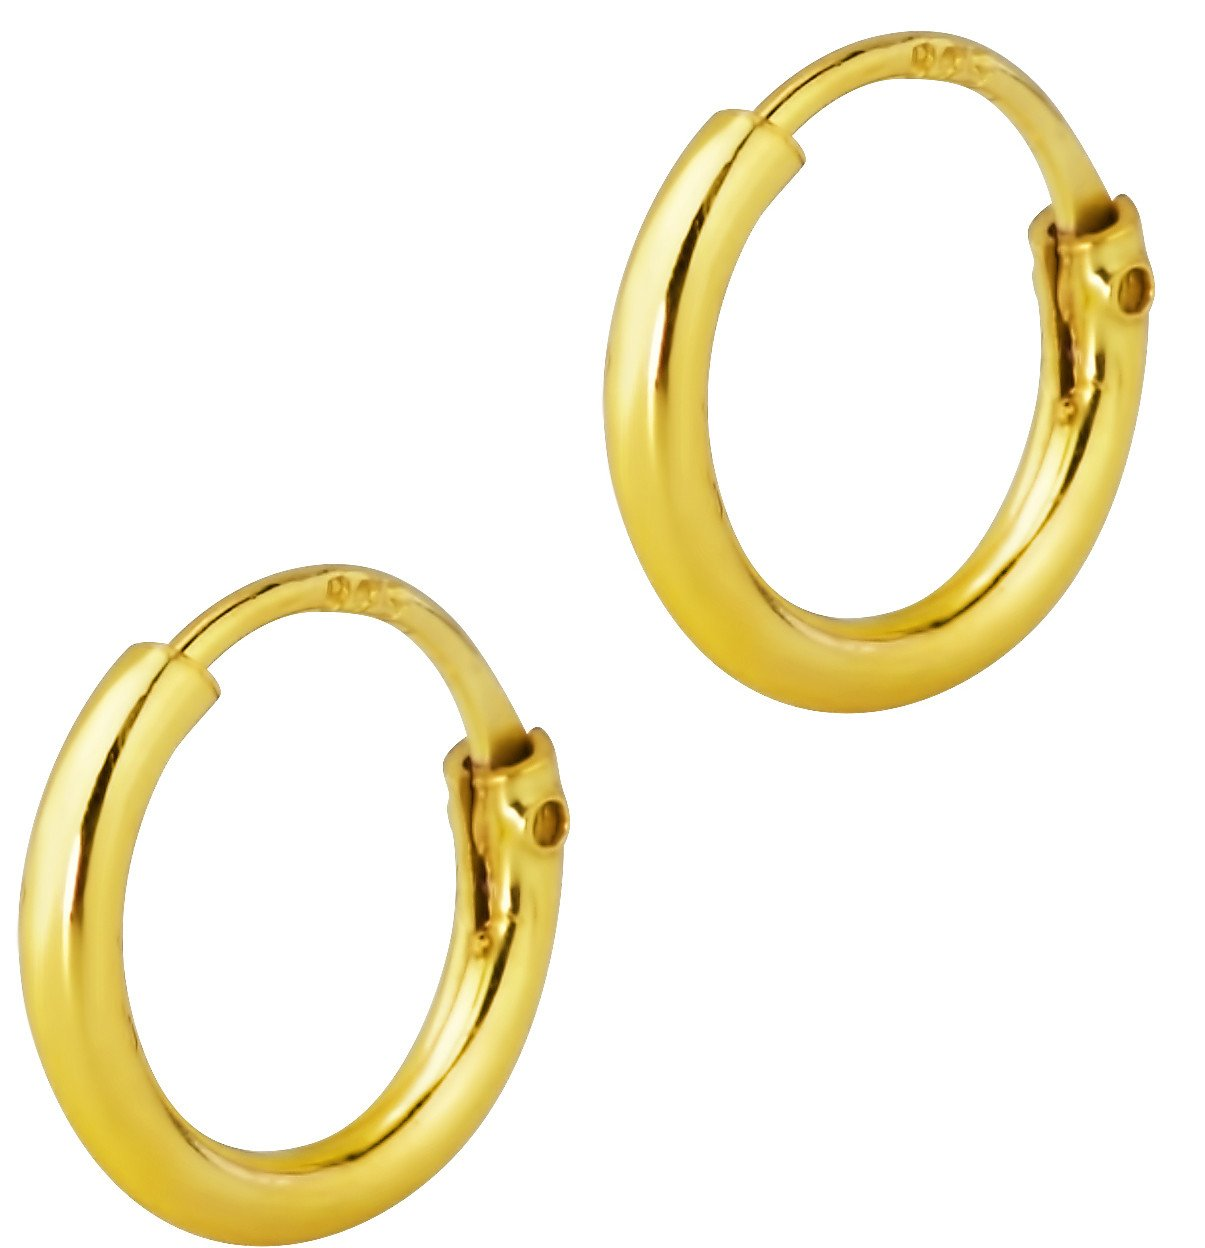 14k Gold Plated Sterling Silver Tiny 8mm Hoop Earrings for Babies and Girls Ages 5 & Under